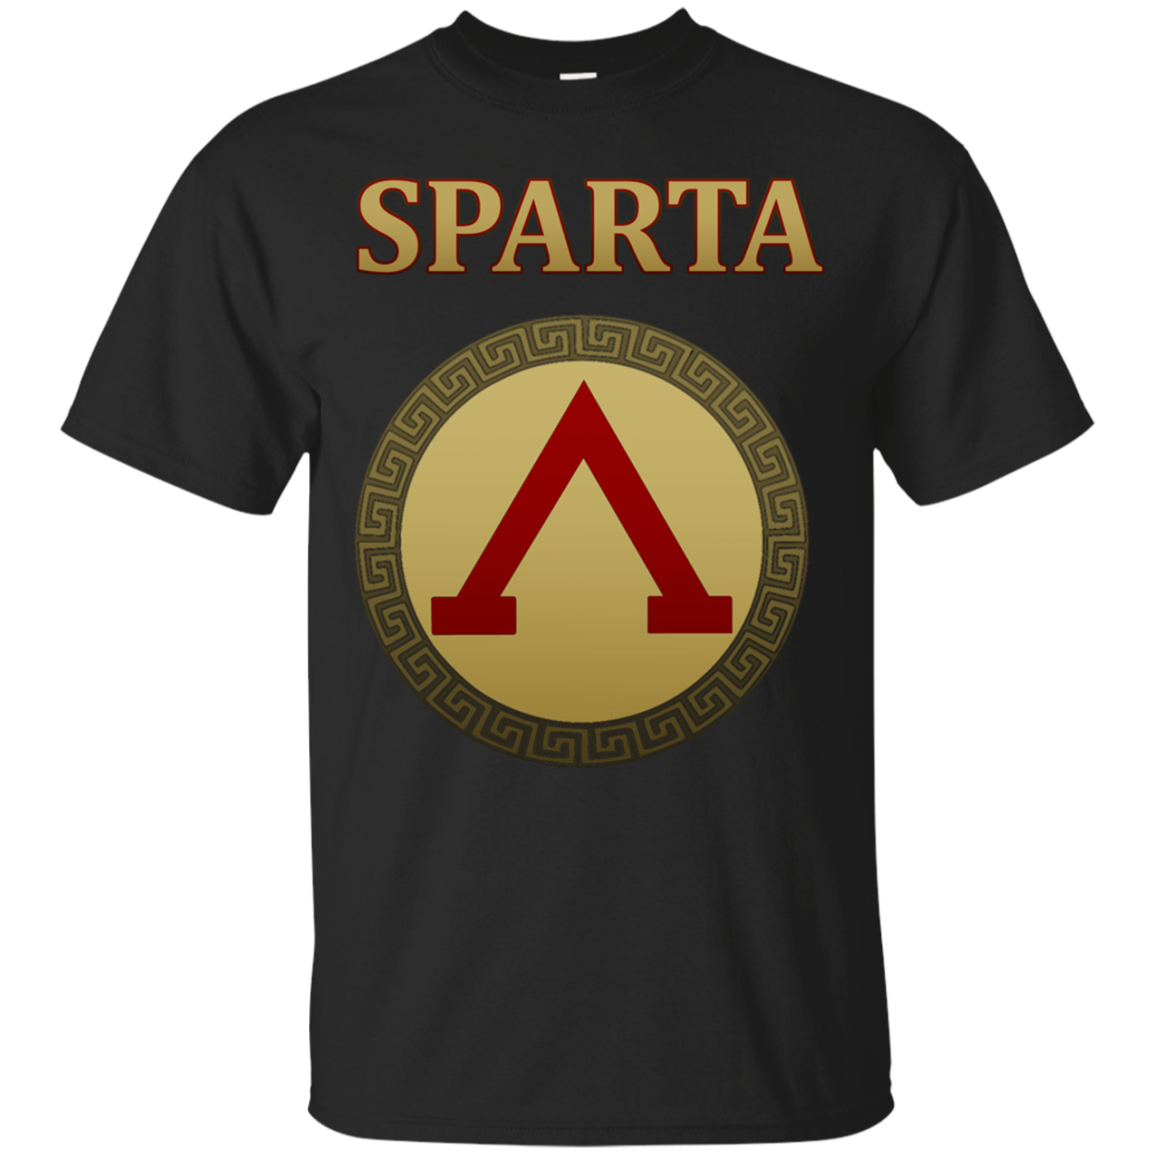 Spartan Warrior Shield T-shirt